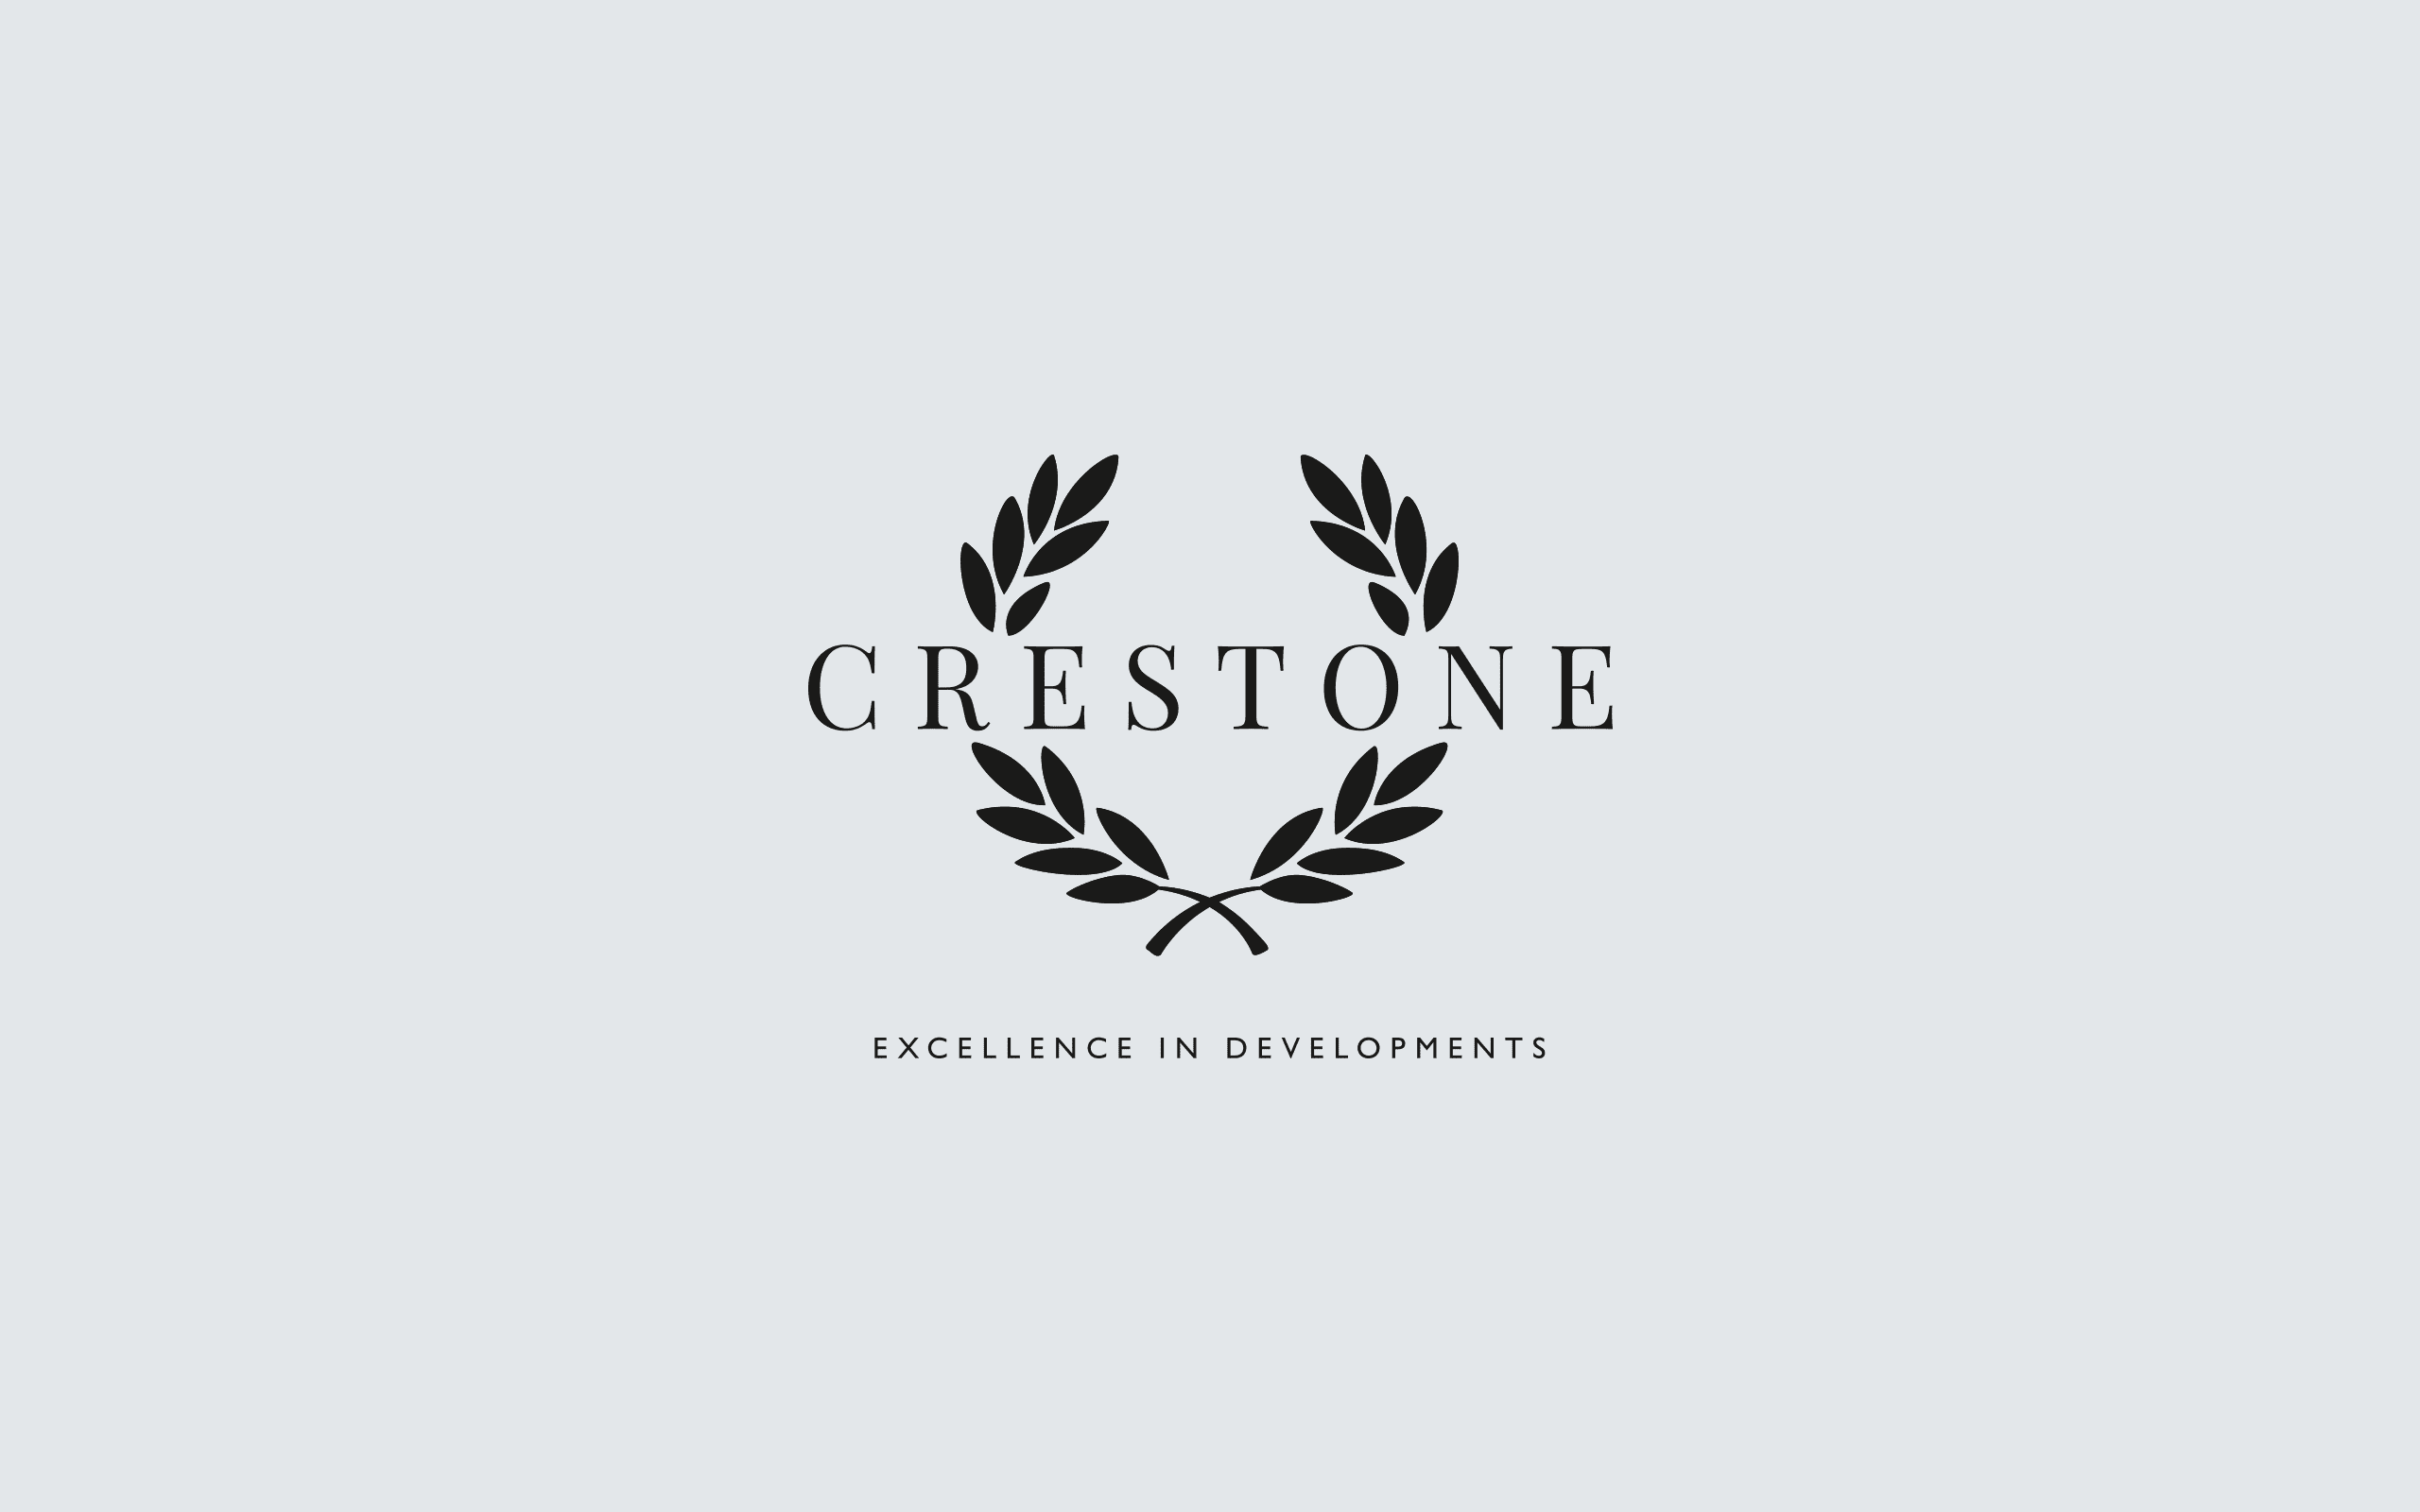 Crestone Developments logo | Zeke Creative